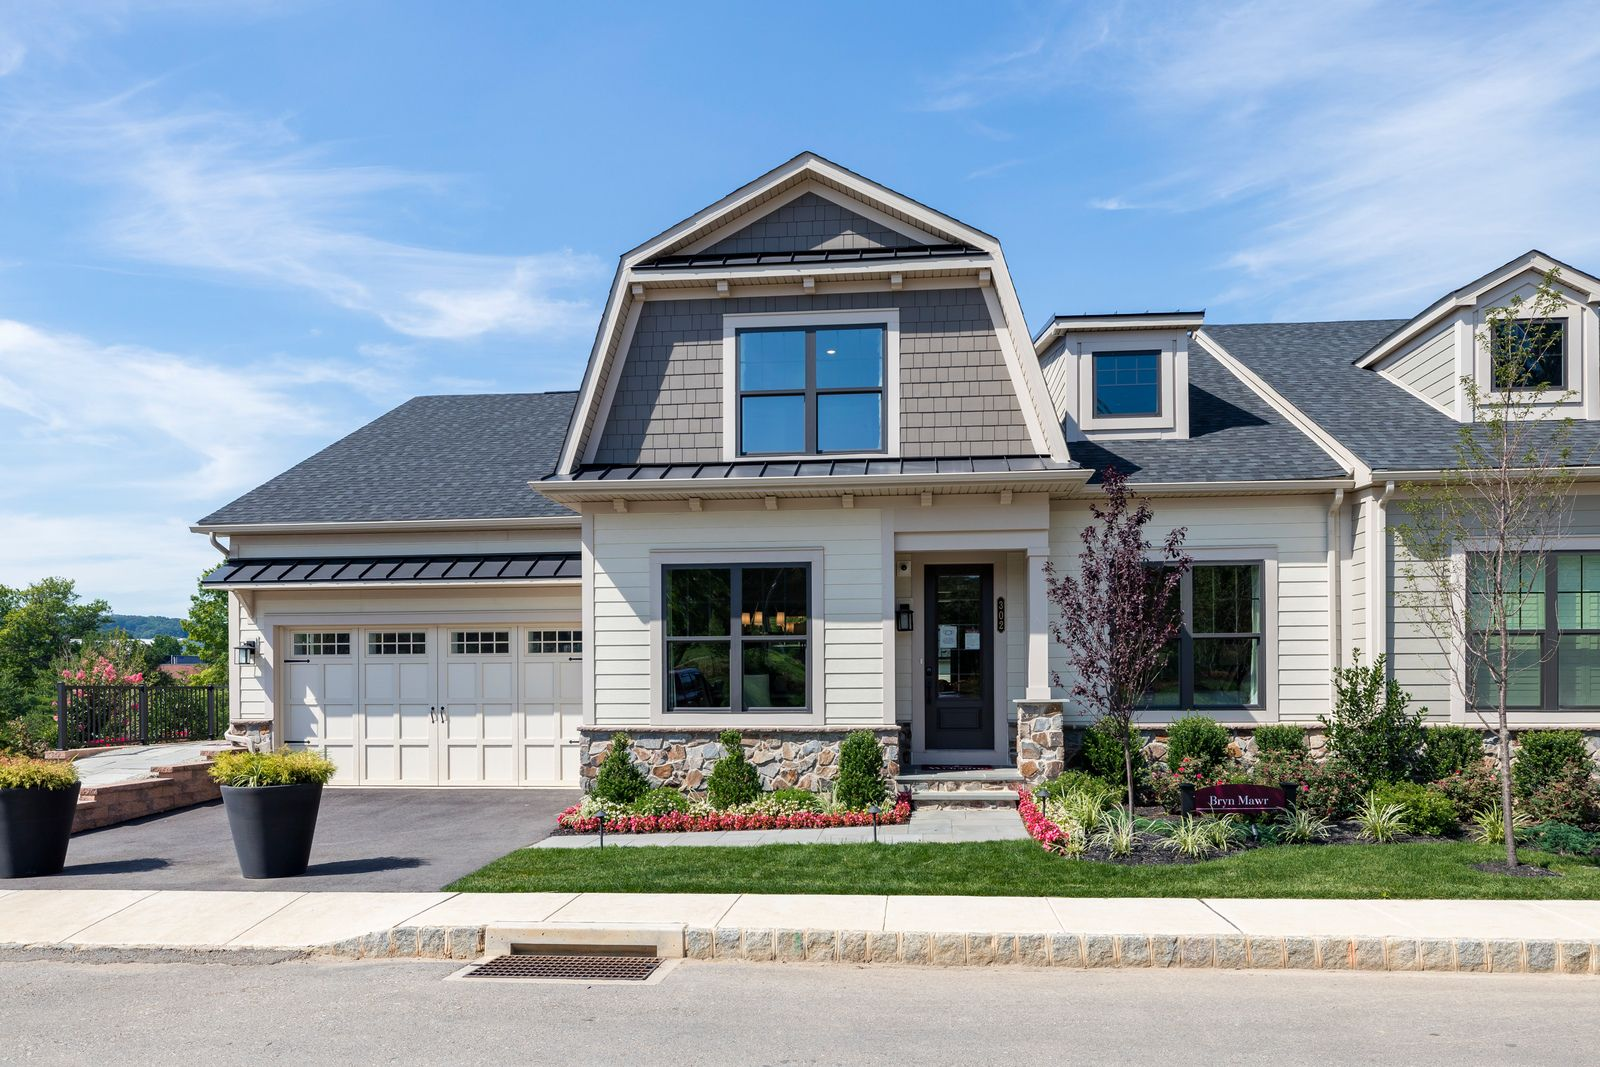 Welcome to Wayne Glen:The only new luxury homes in Wayne with low-maintenance lifestyle, walkable to KOP Town Center in TE schools.Click here to schedule your appointment today!